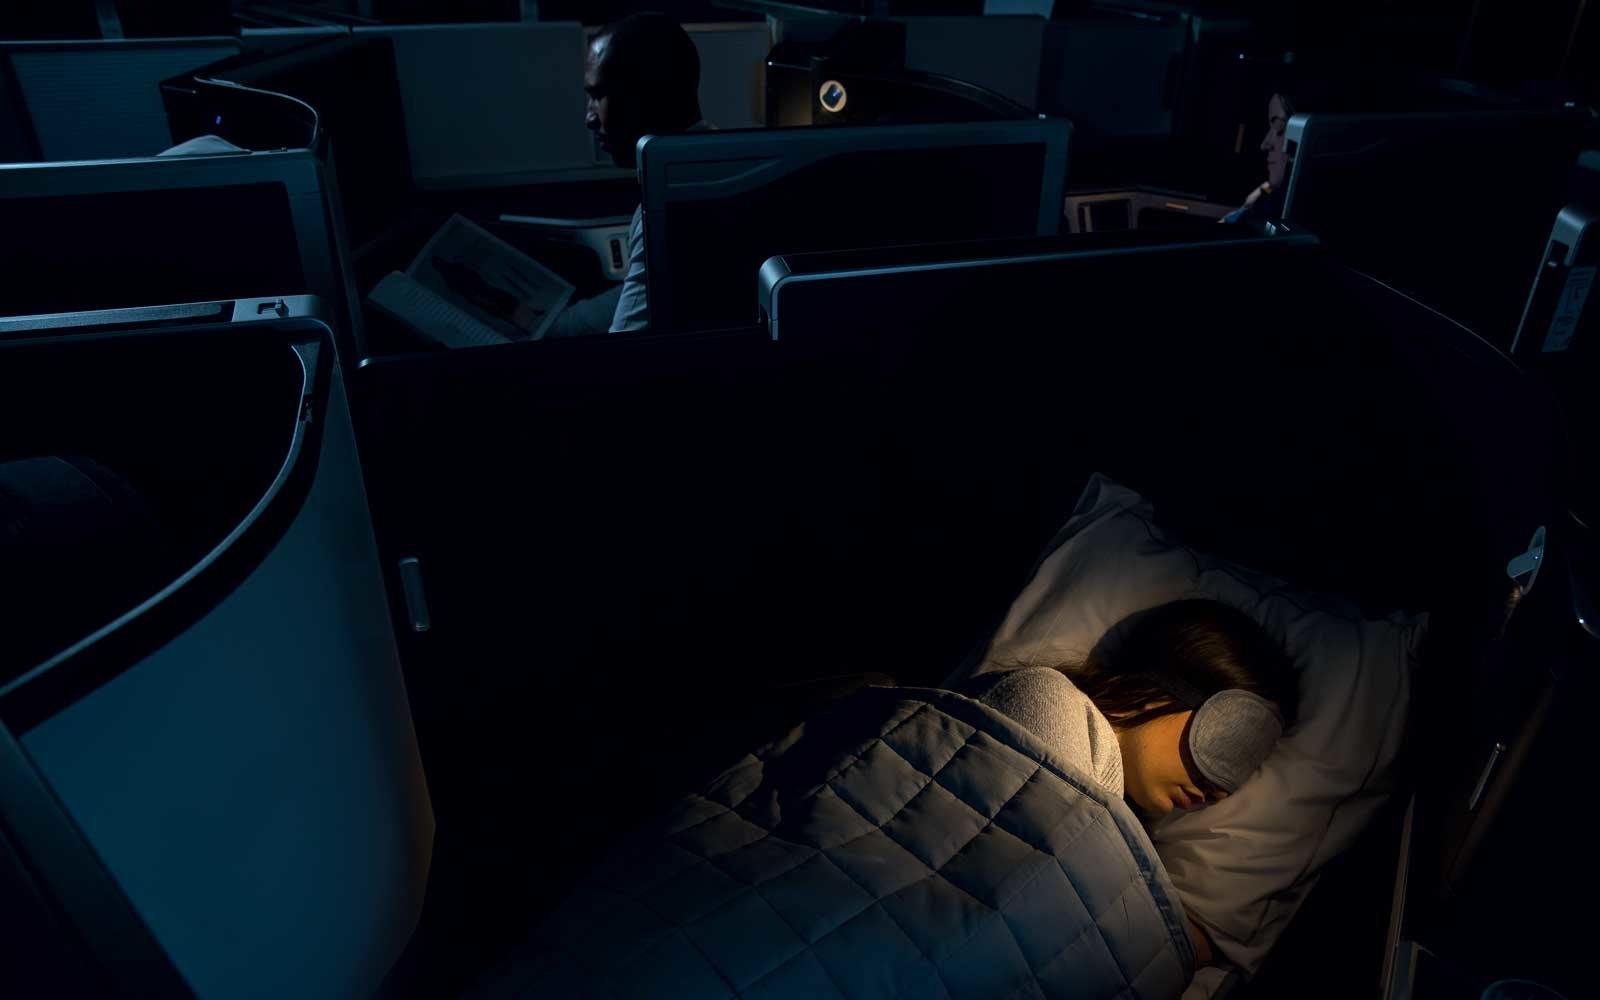 New British Airways business class seat features door and lie-flat beds